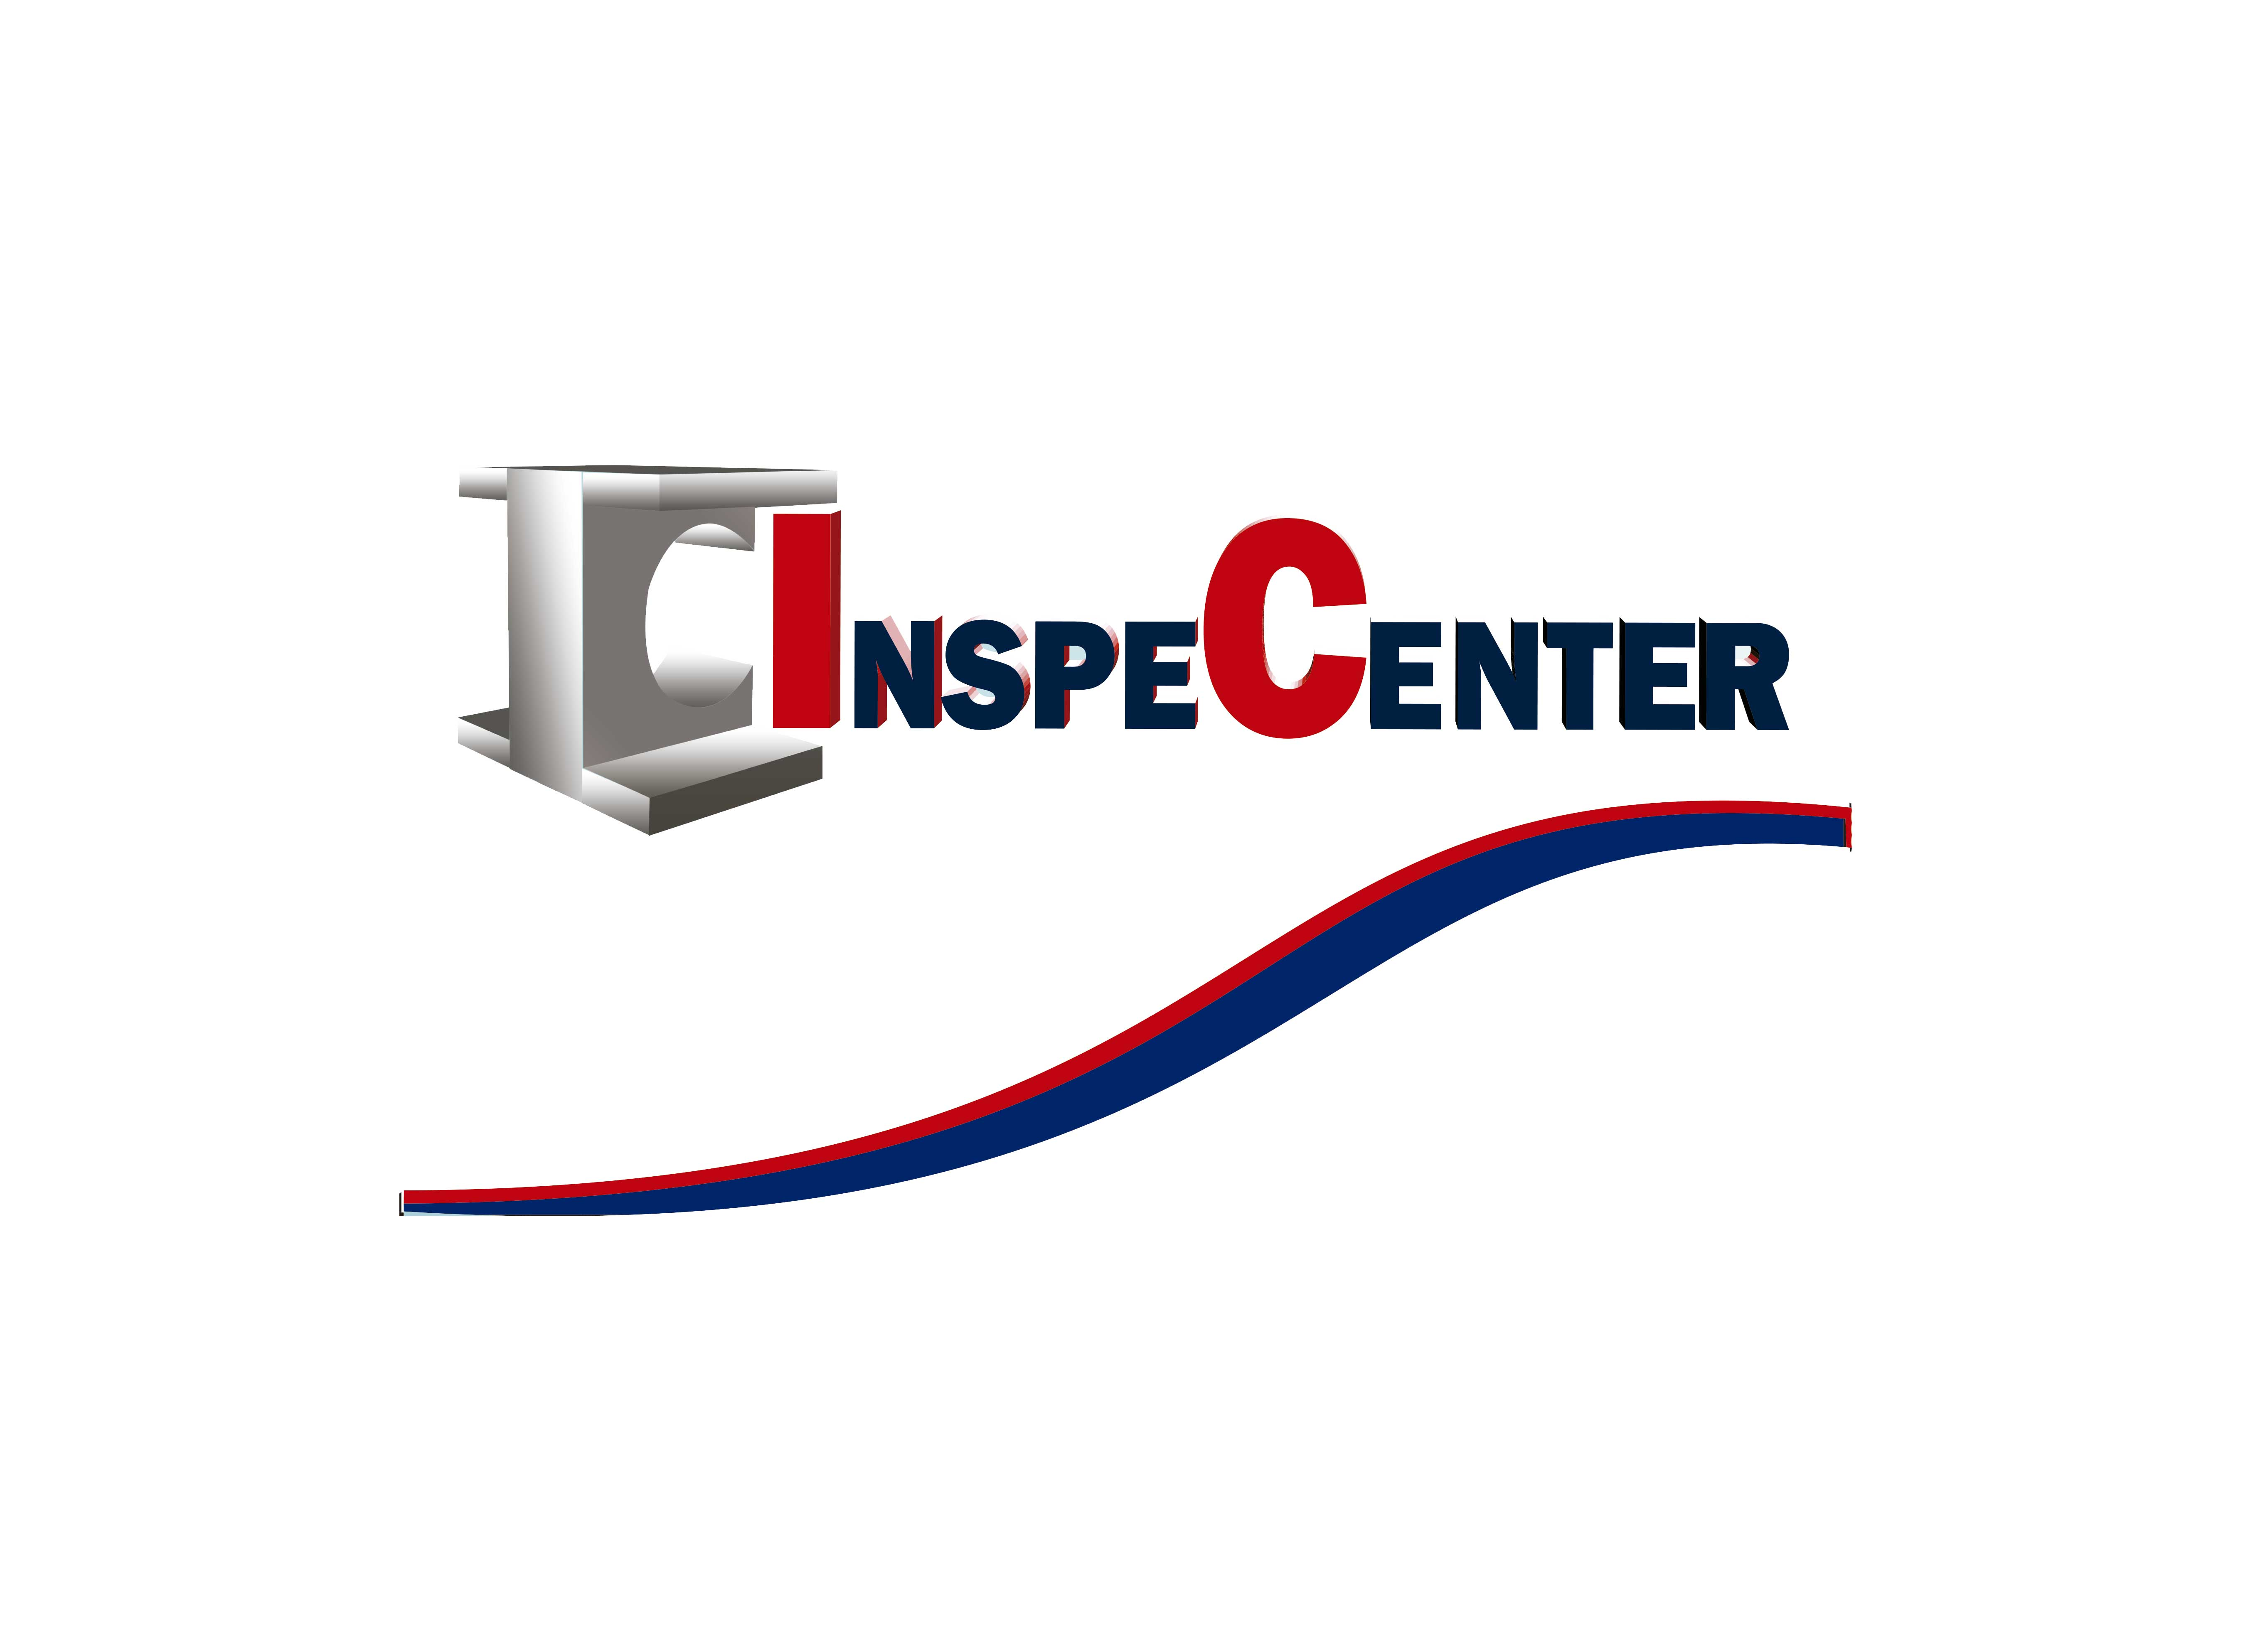 inspecenter-drc-marketingdigital